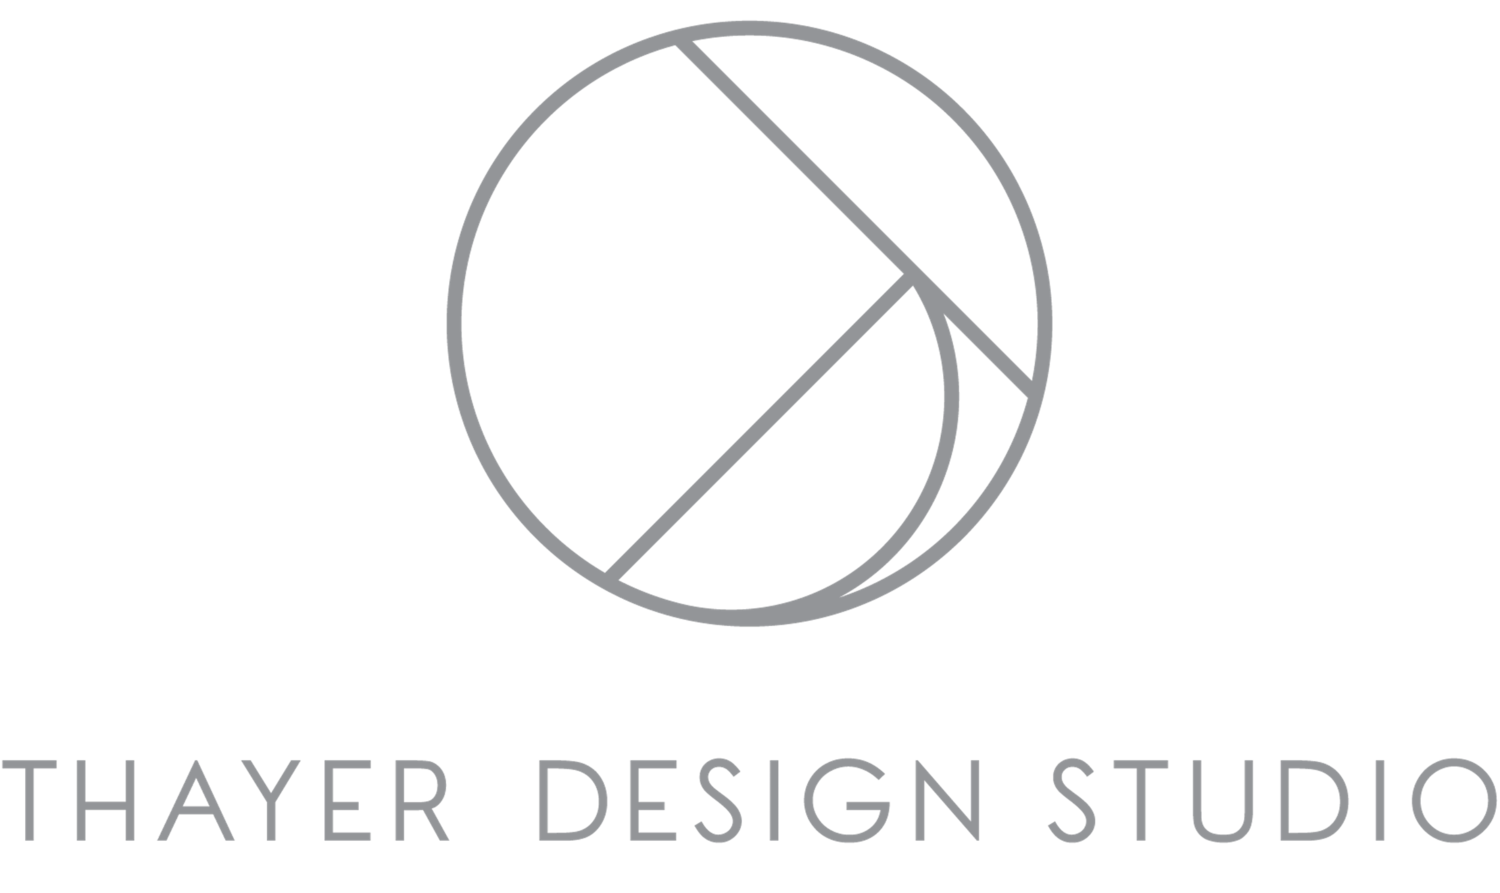 Thayer Design Studio